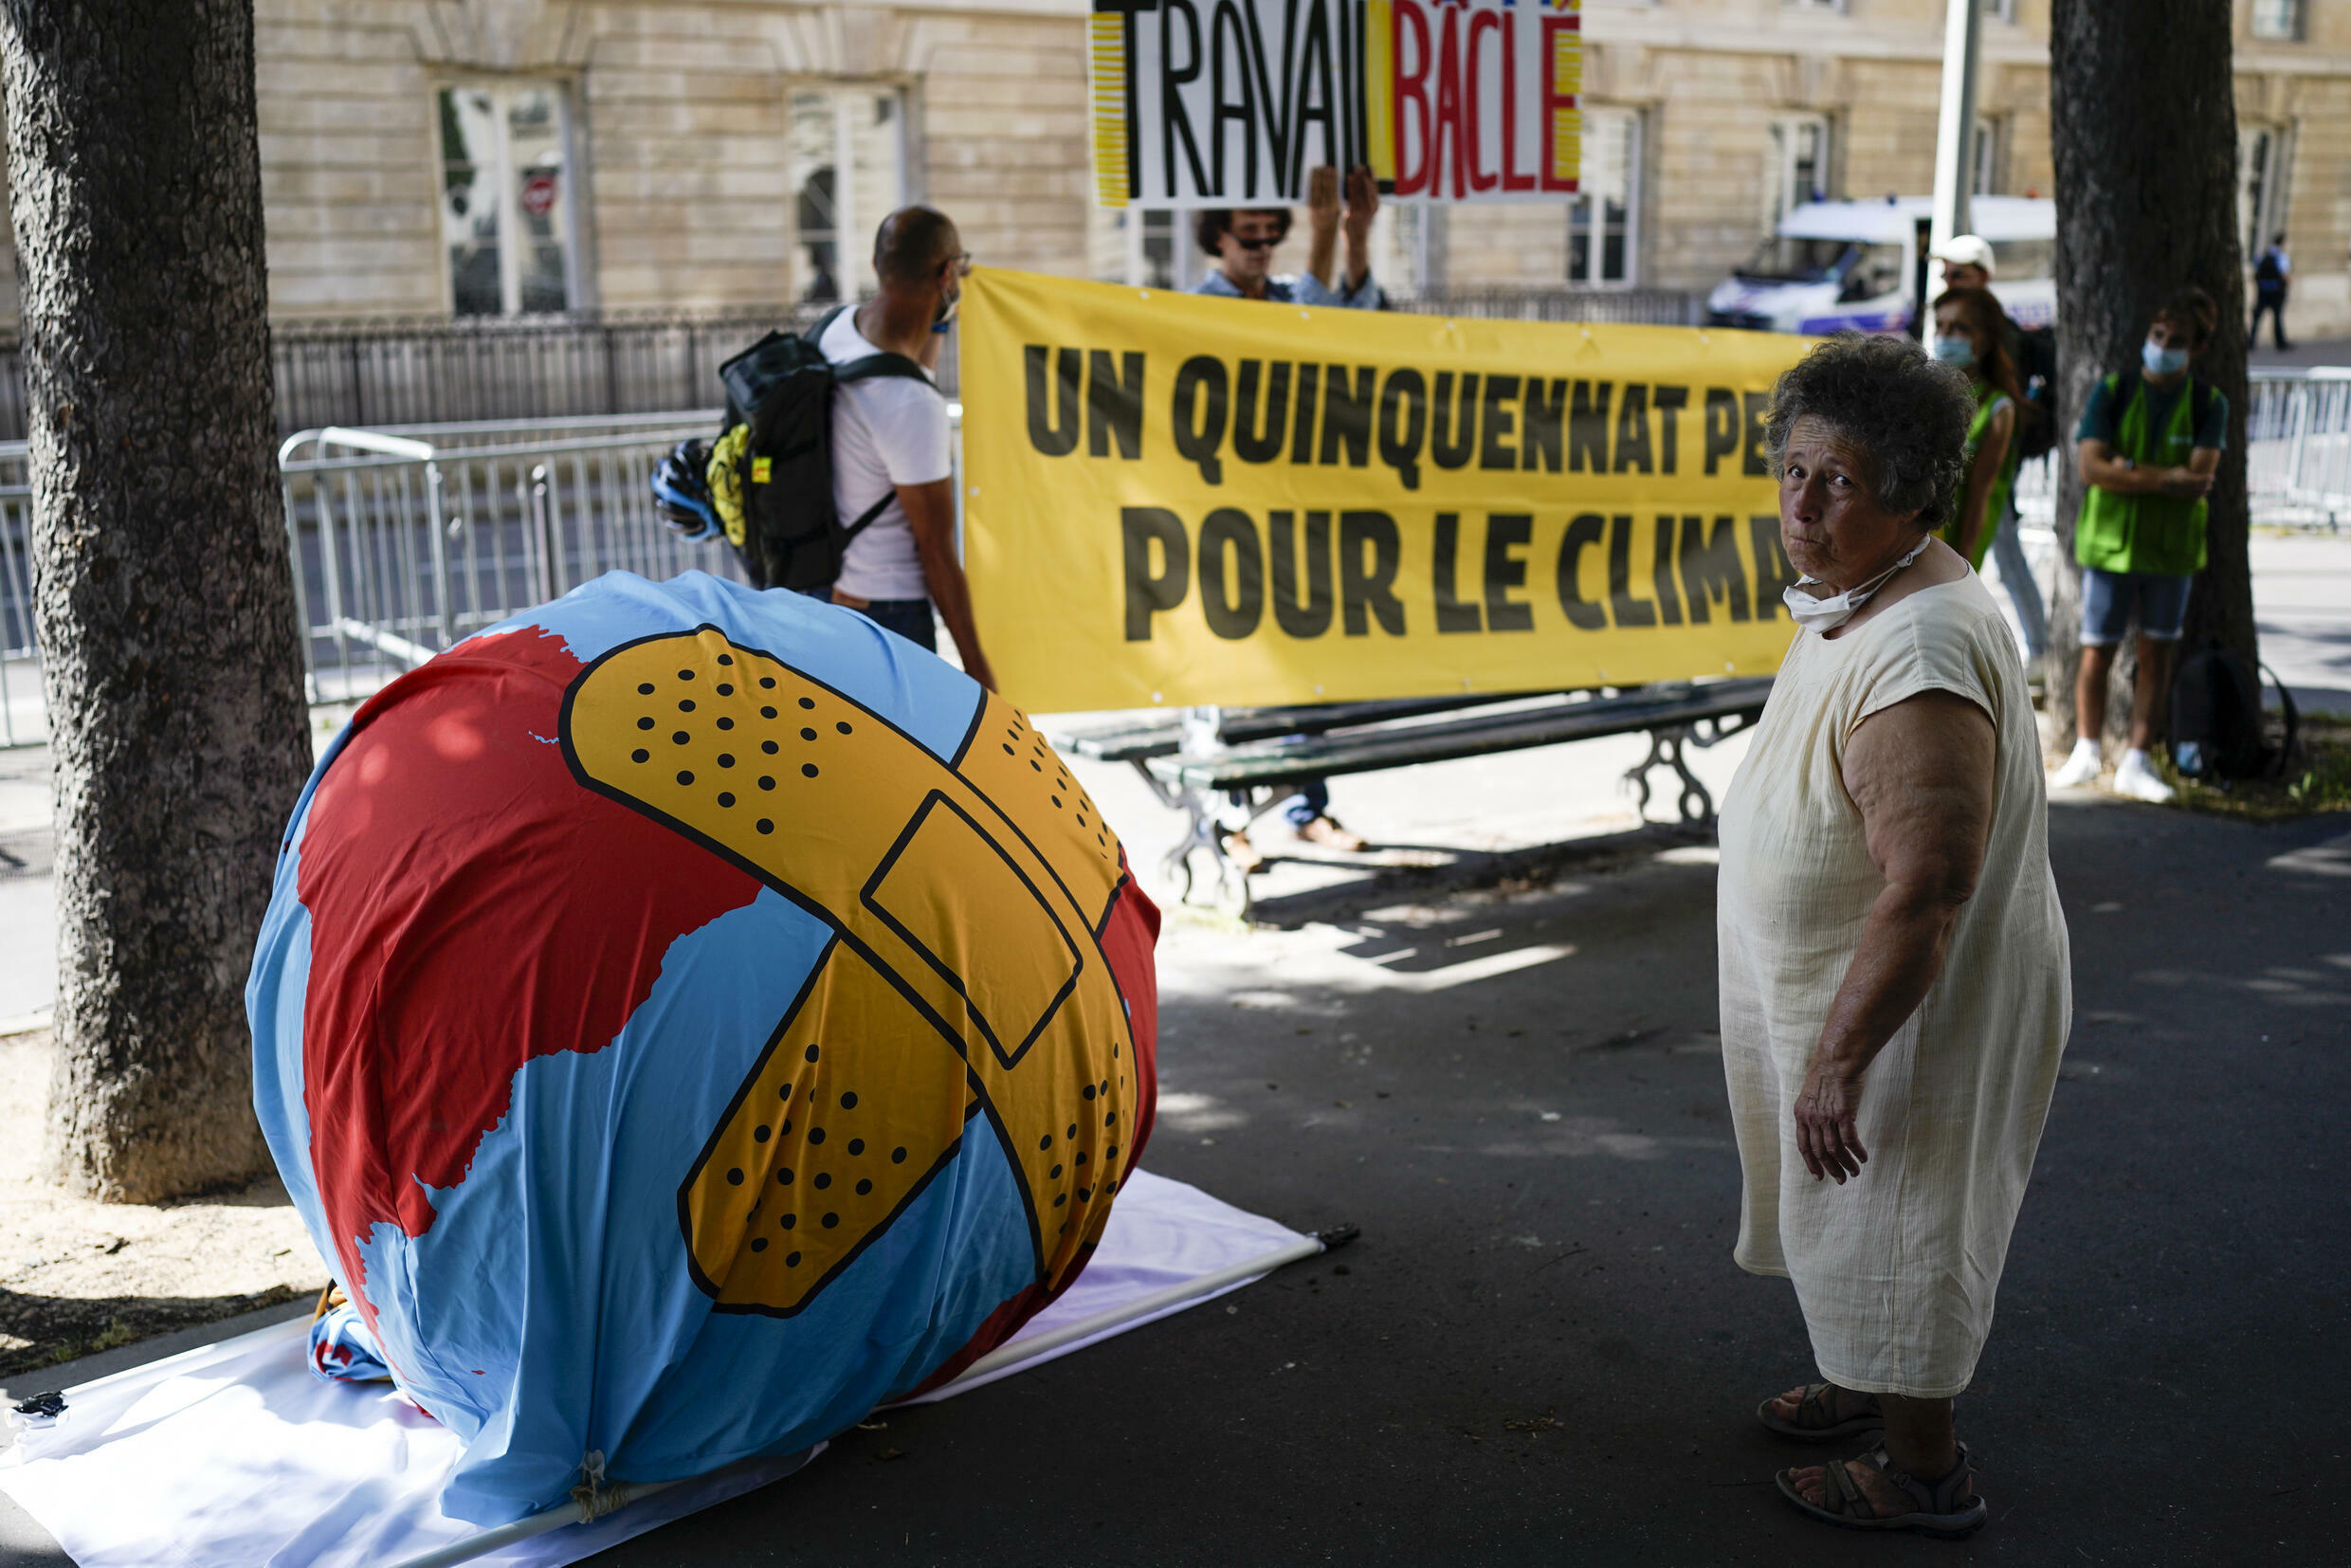 Climate activists demonstrated outside the National Assembly in Paris on Tuesday, as the parliament held a final vote on the climate bill.